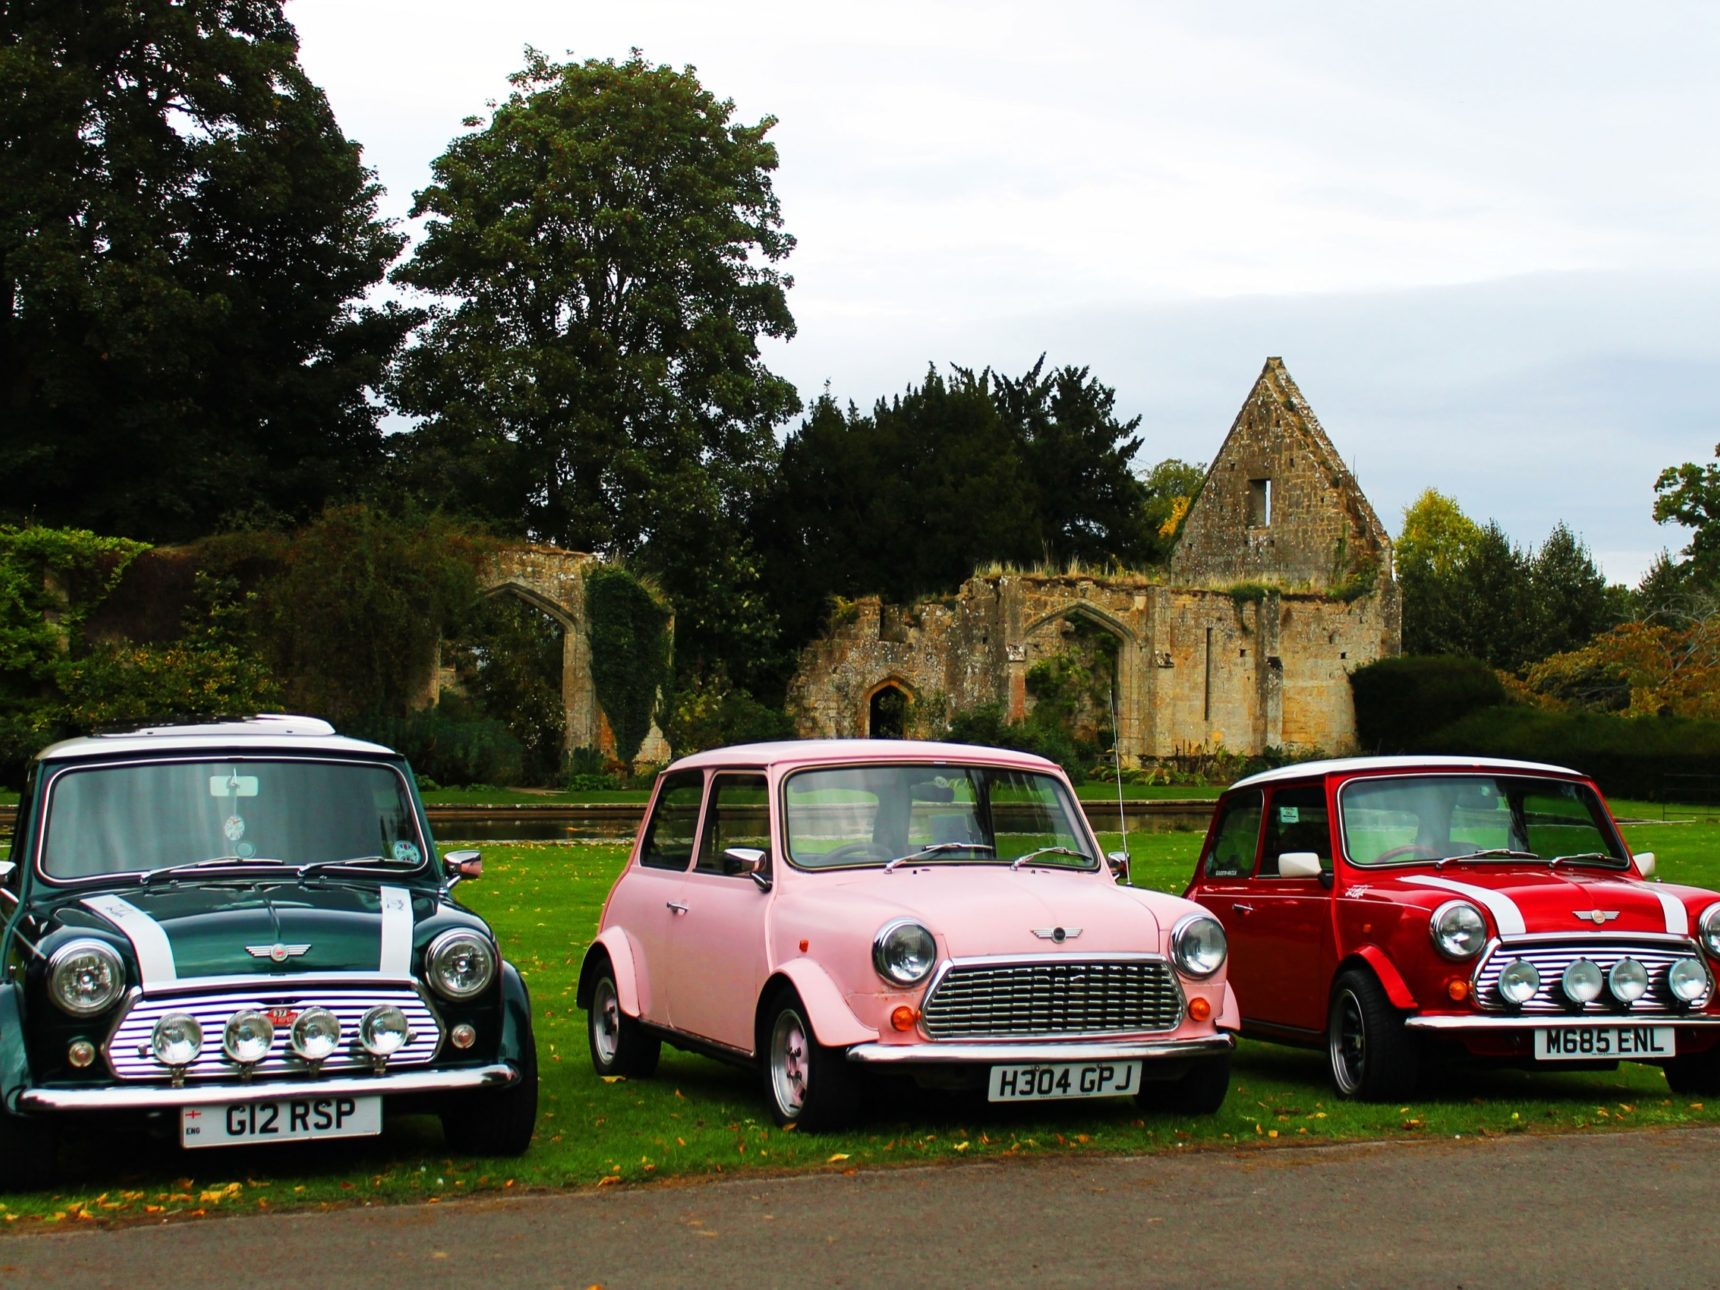 Green, pink and red Mini Coopers sit side by side